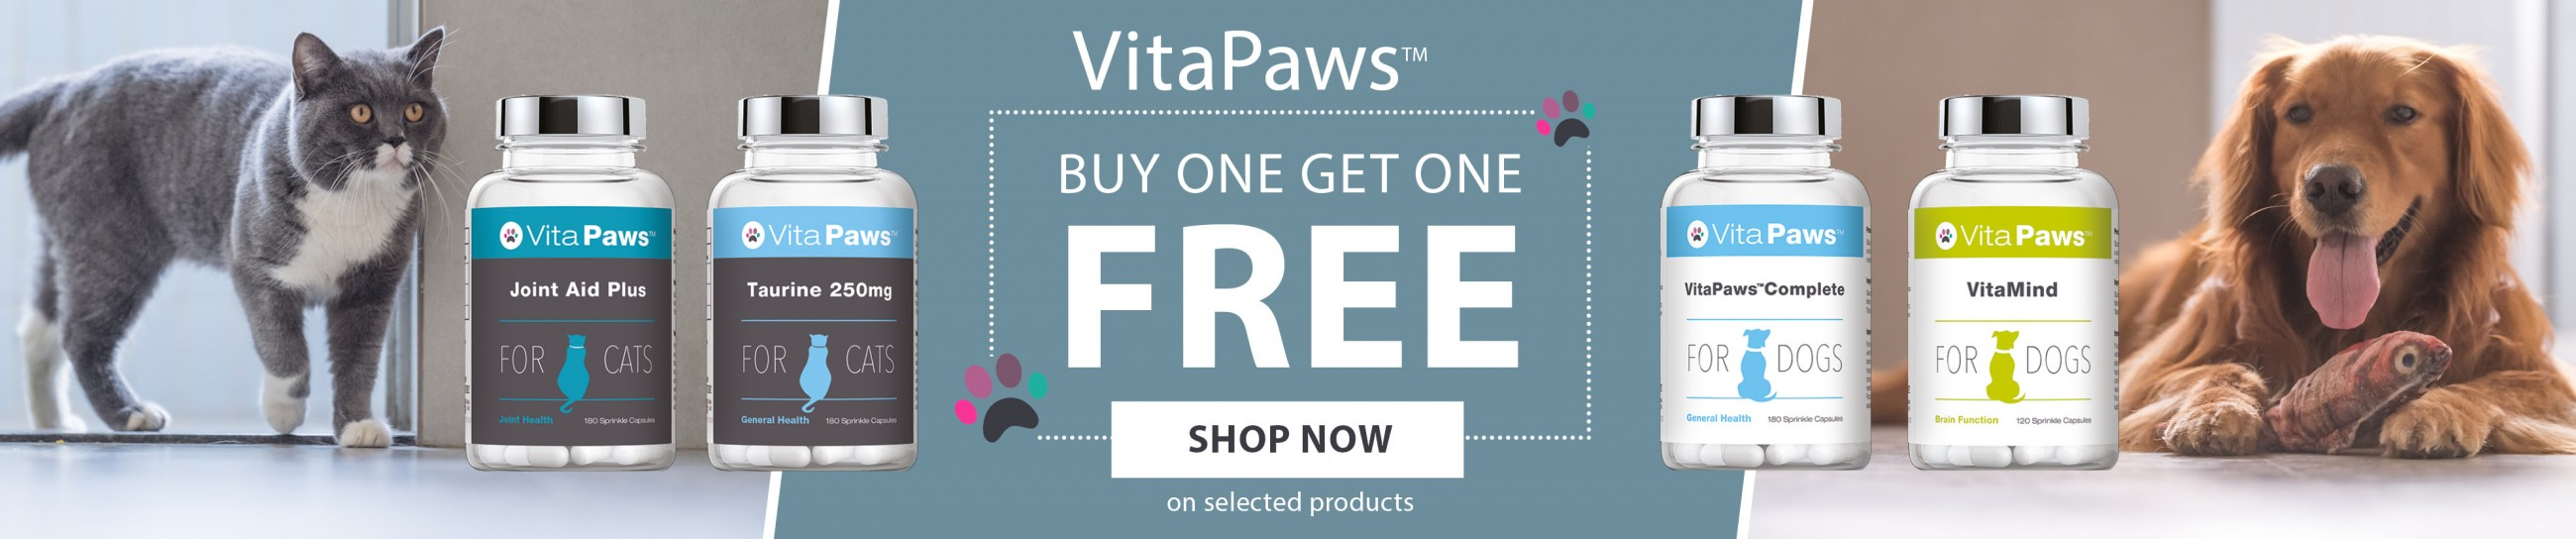 VitaPaws - Buy One Get One Free